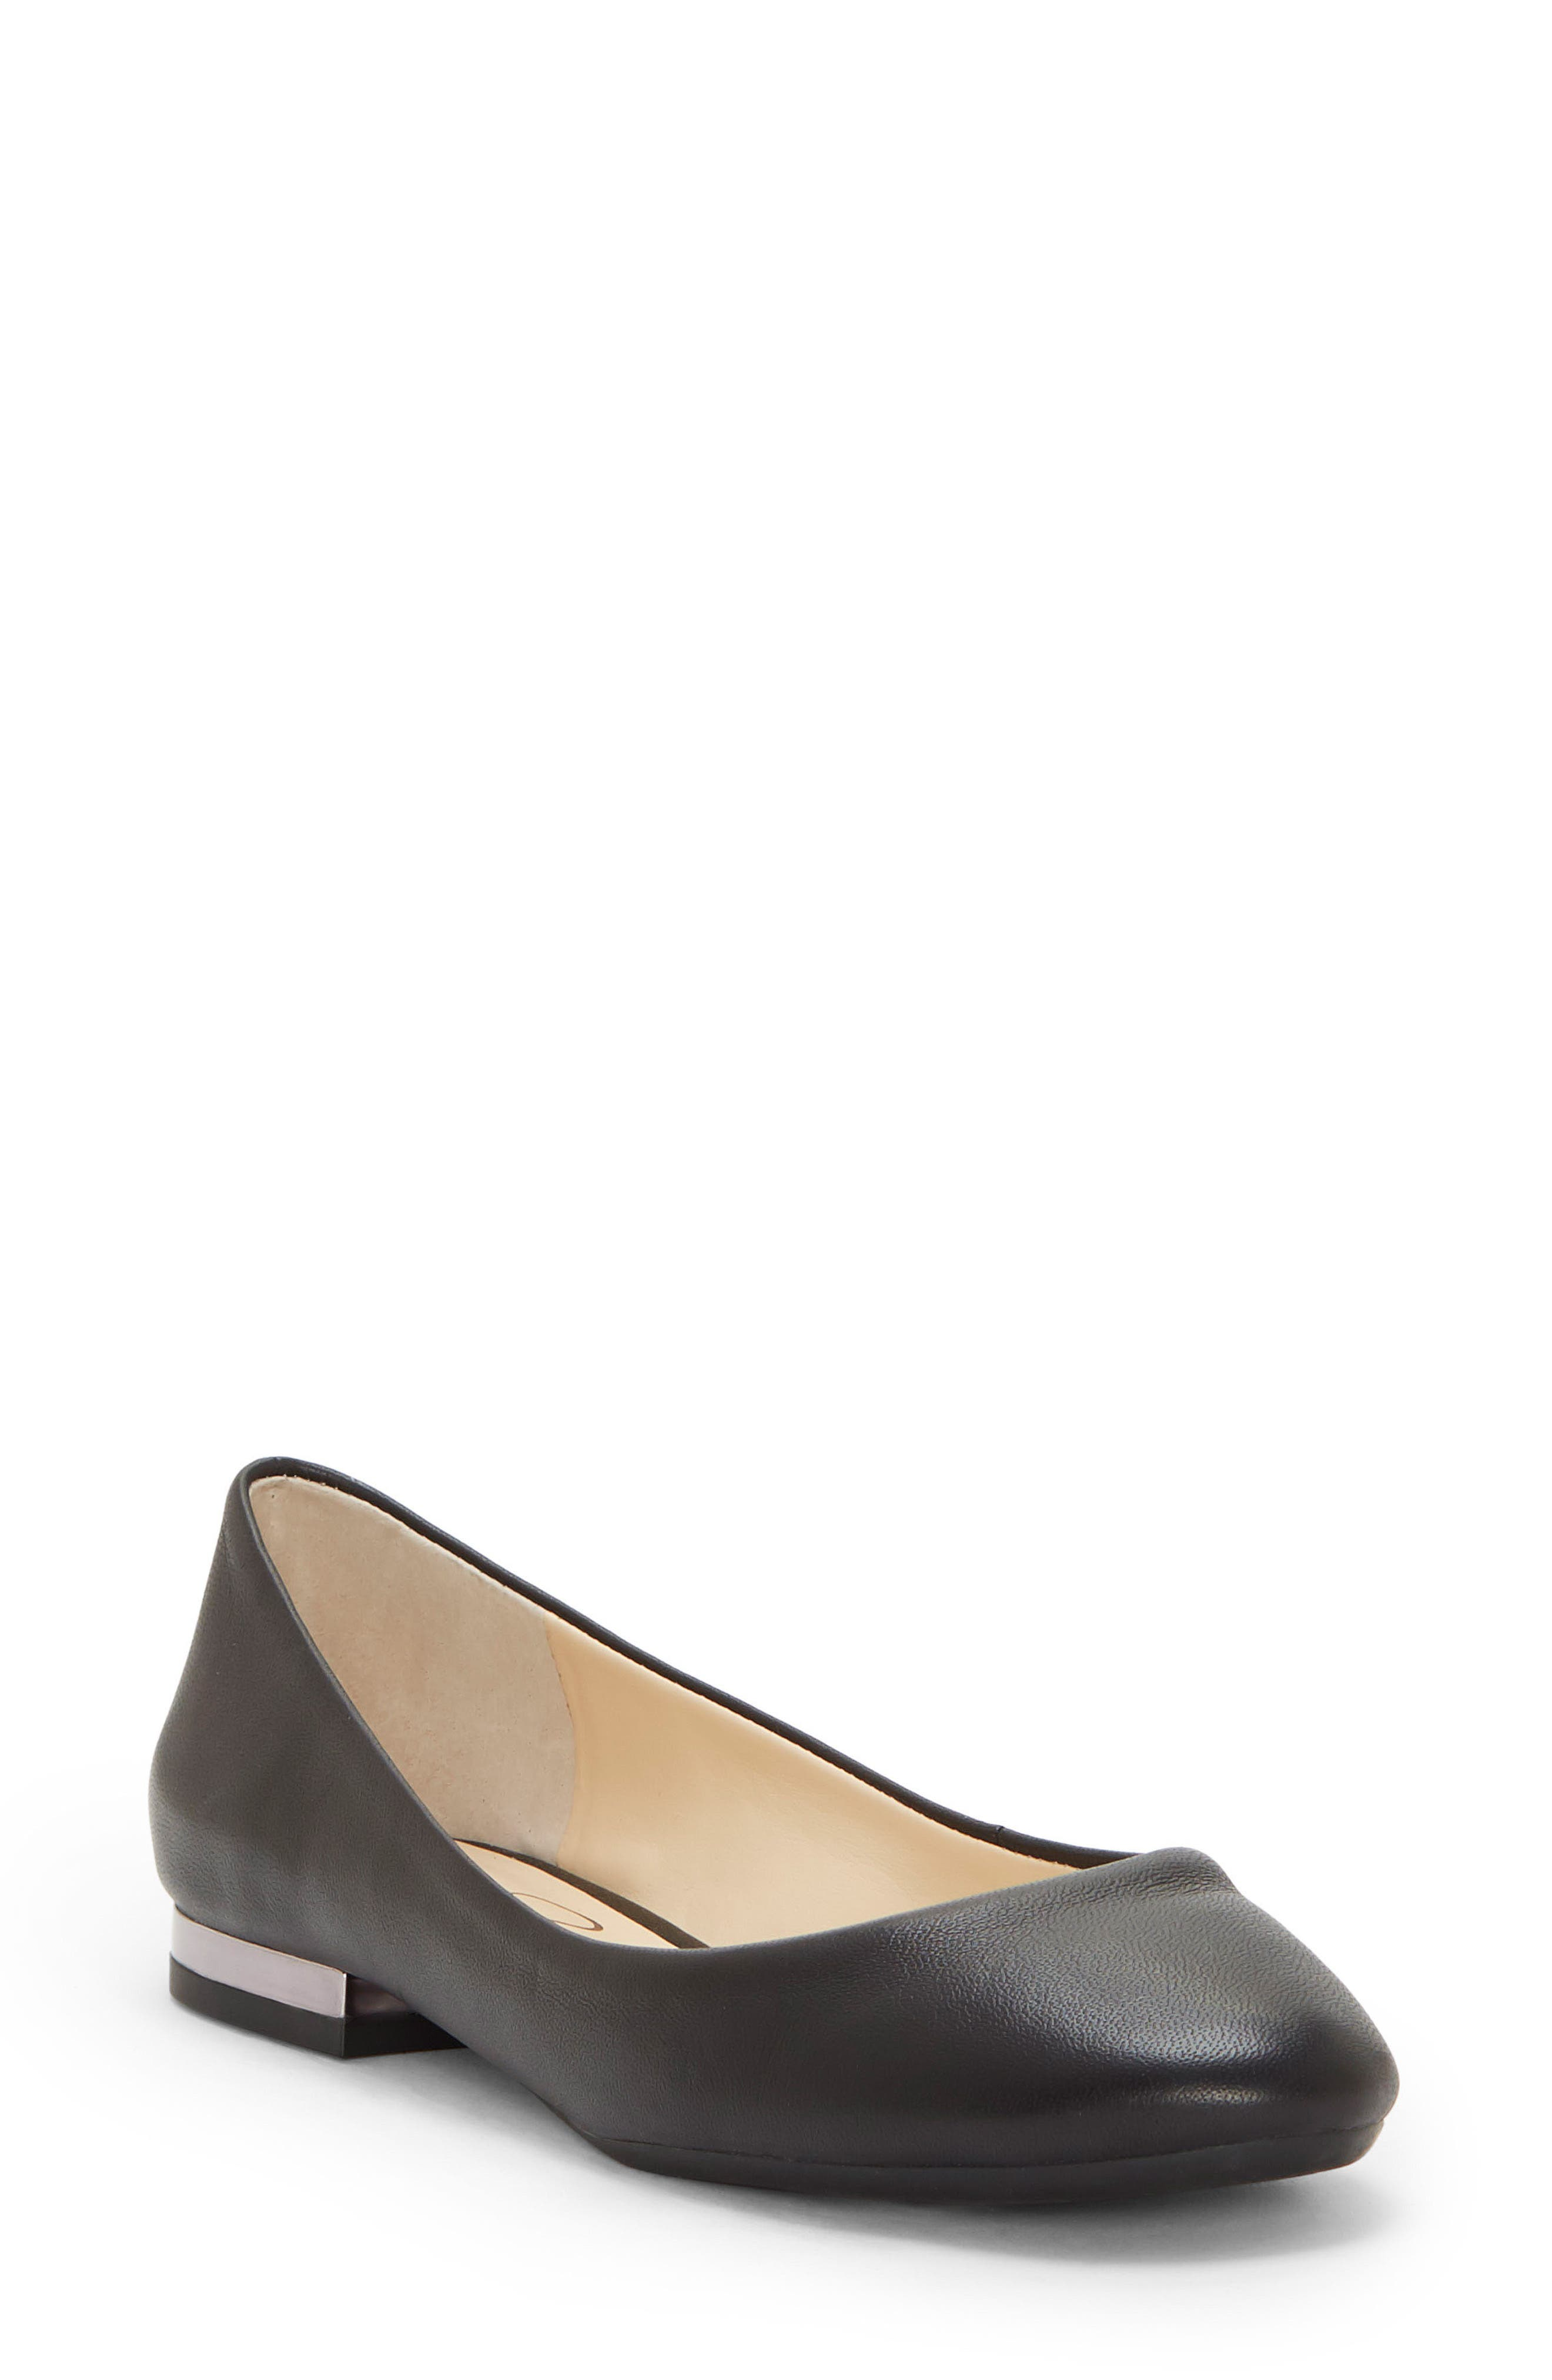 Jessica Simpson Ginly Ballet Flat, Black